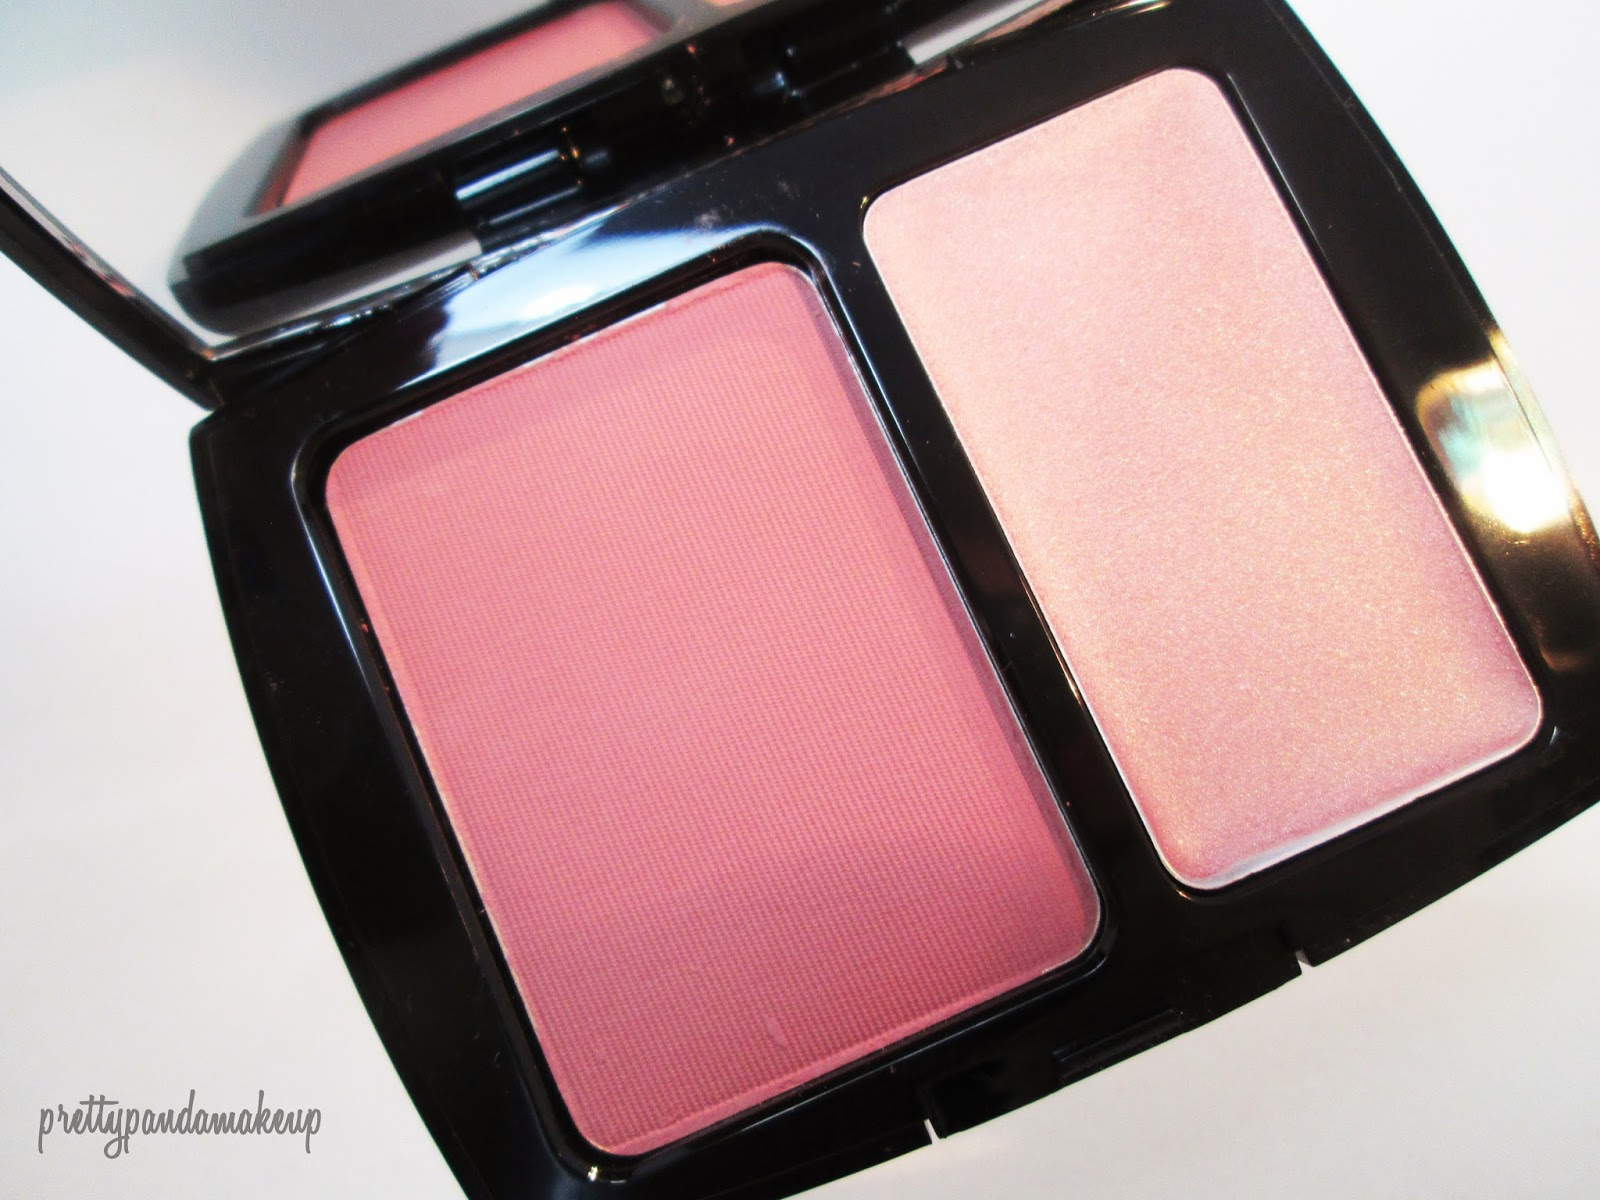 Jason Wu for Lancome Pre Fall 2014 Blush Subtil in Pressed Rose